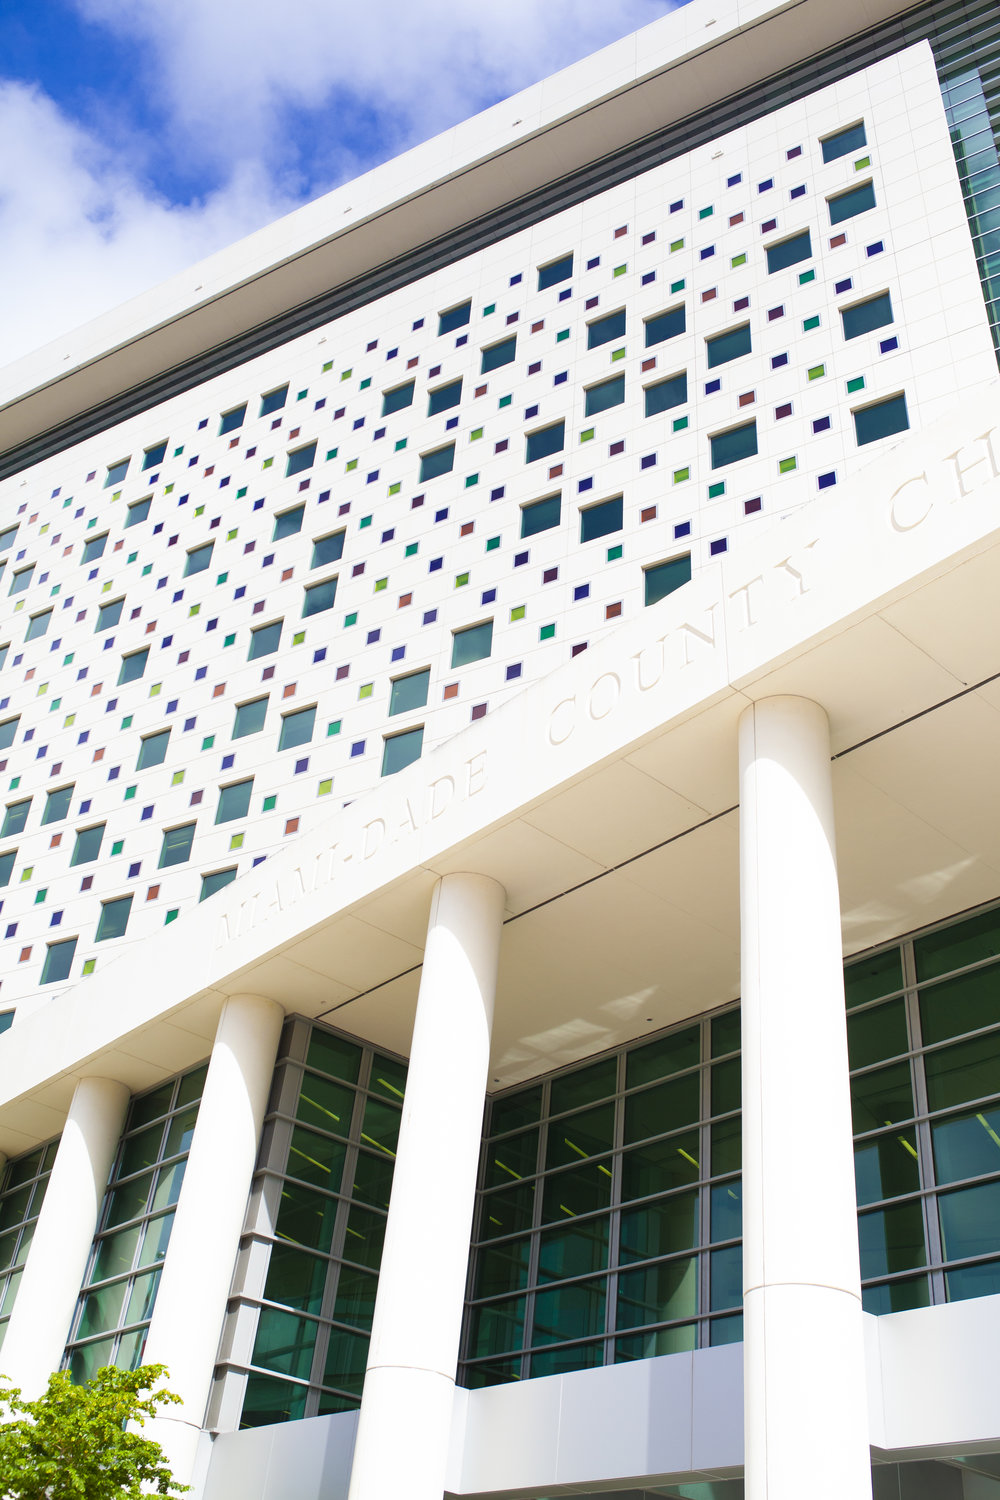 miami-childrens-courthouse-adoption-from-foster-care